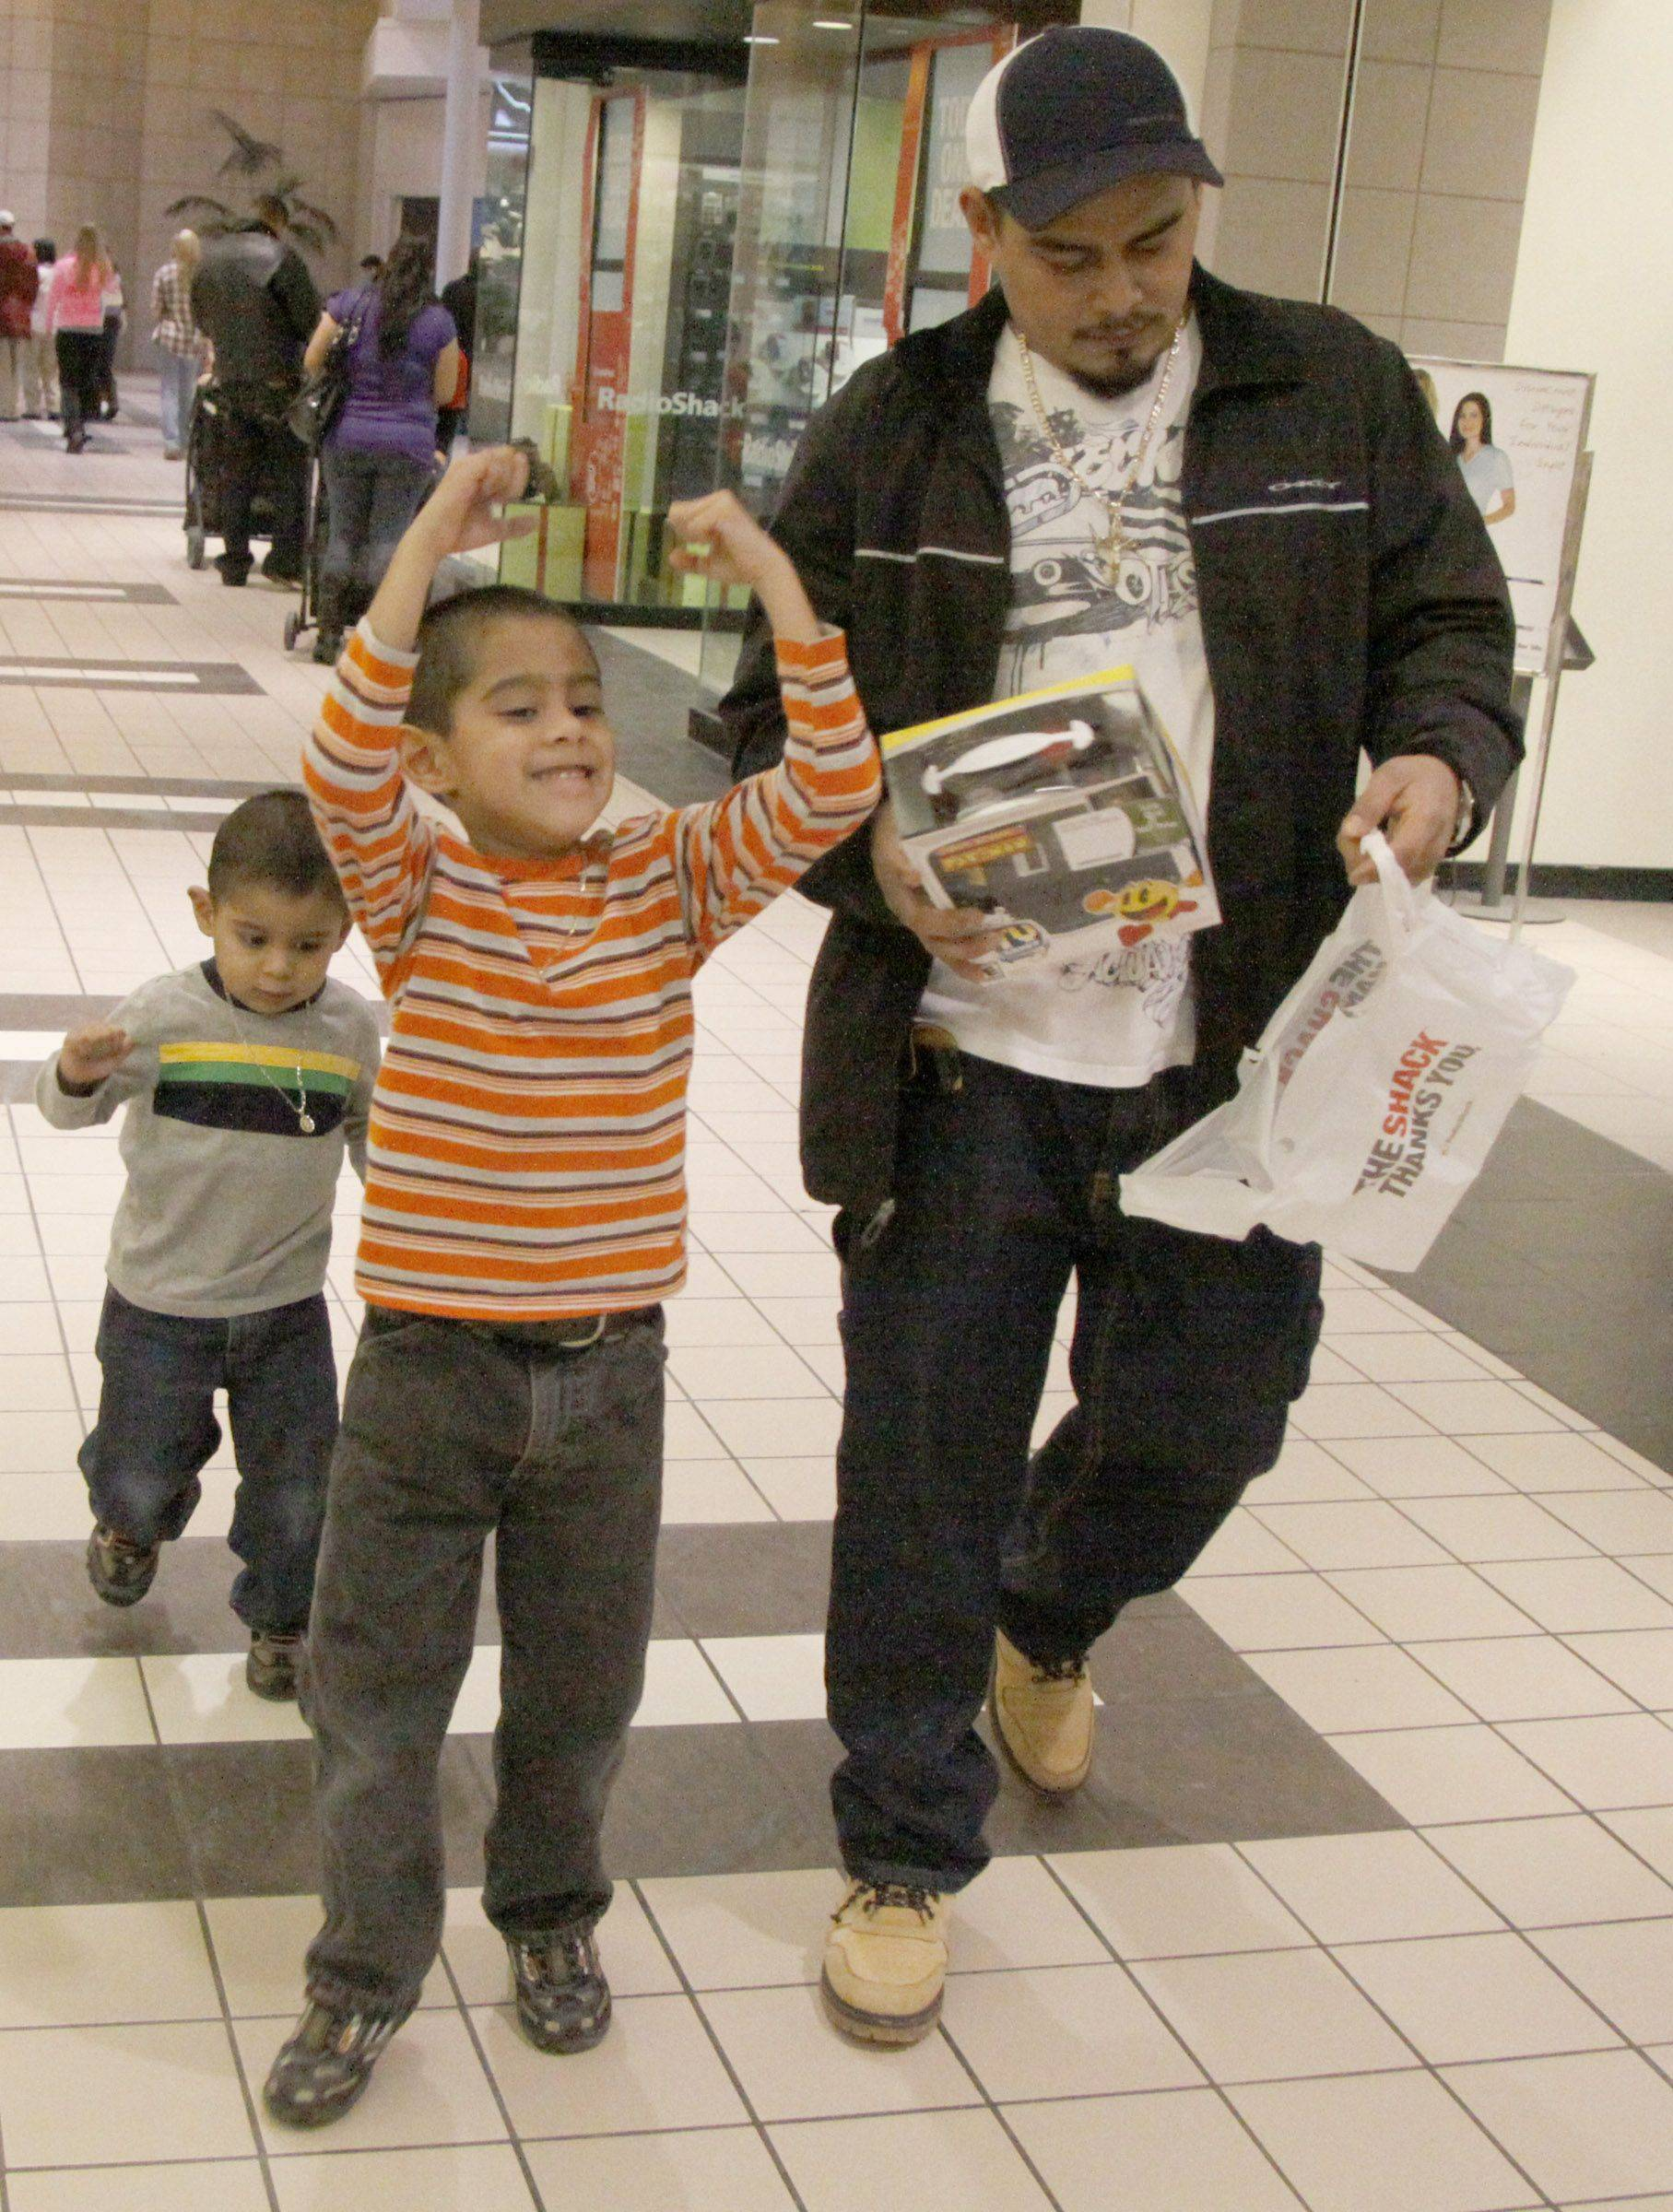 Daniel Bautista Jr., 6, of Elgin was full of glee after his father Daniel brought him and his brother Johan, 3, to Spring Hill Mall in West Dundee to buy a Pac Man game Sunday.